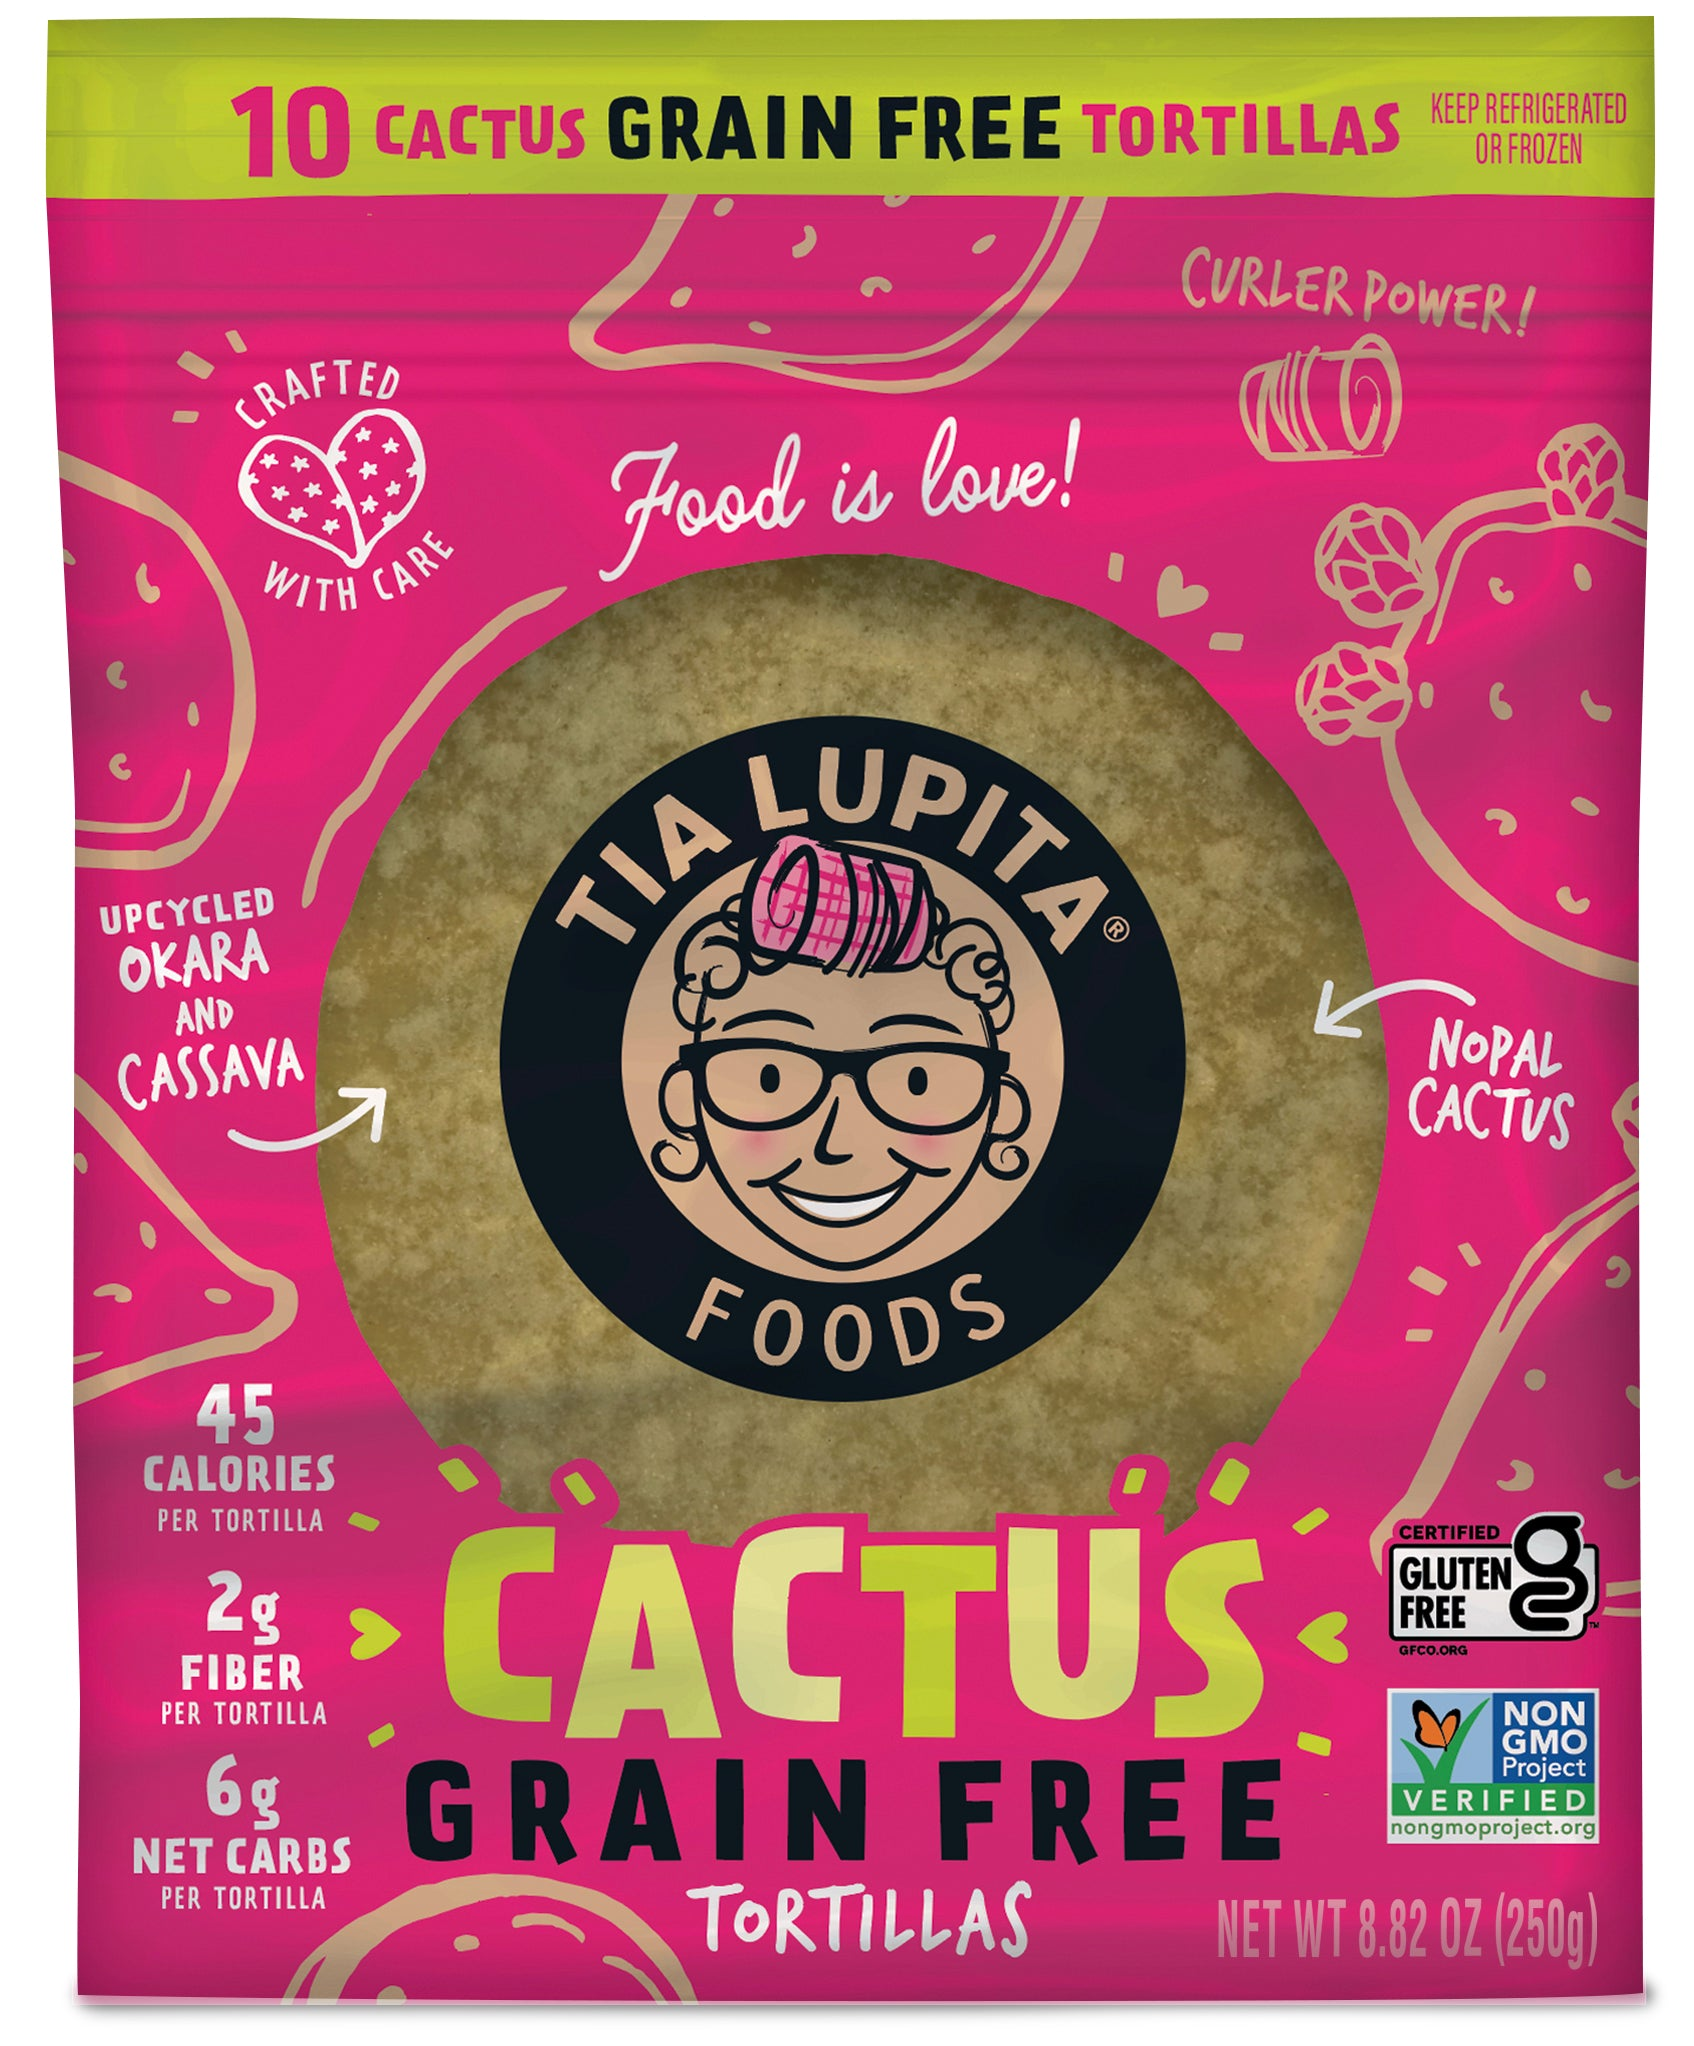 Tia Lupita featured by Food Business News - Virtual Expo West innovators target mind, body and planet